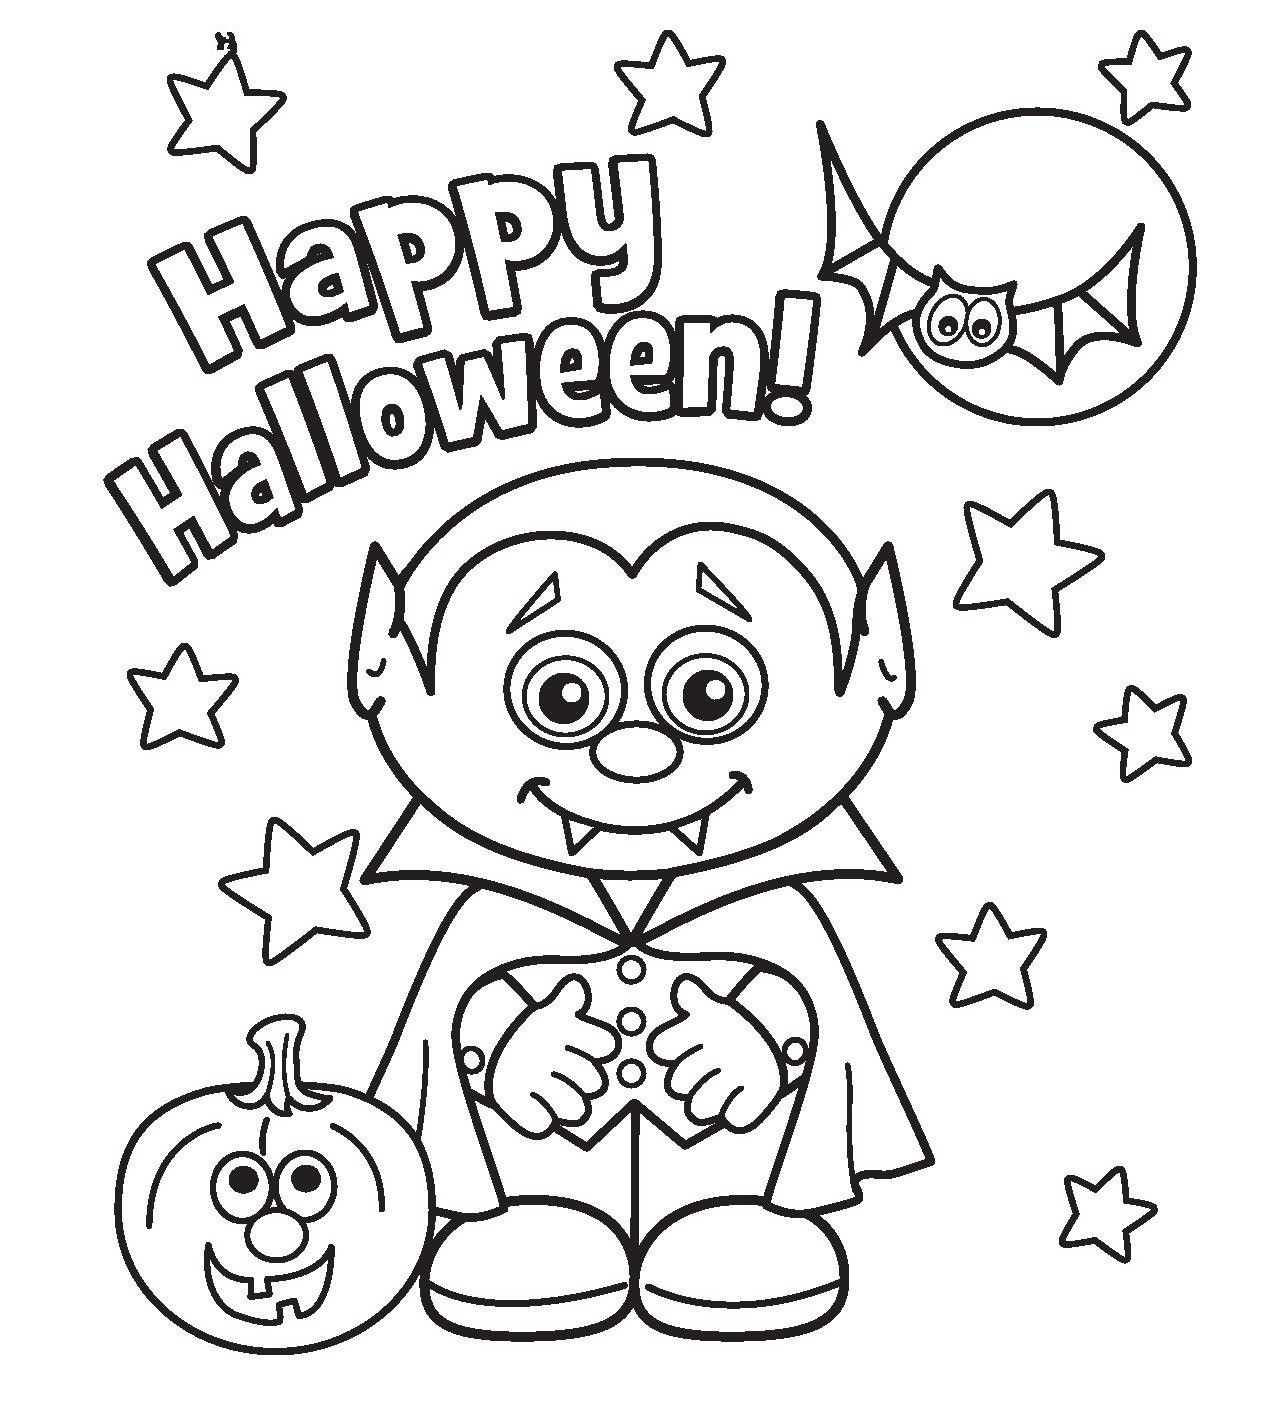 Free happy halloween coloring pages coloring home for Happy halloween coloring pages printable